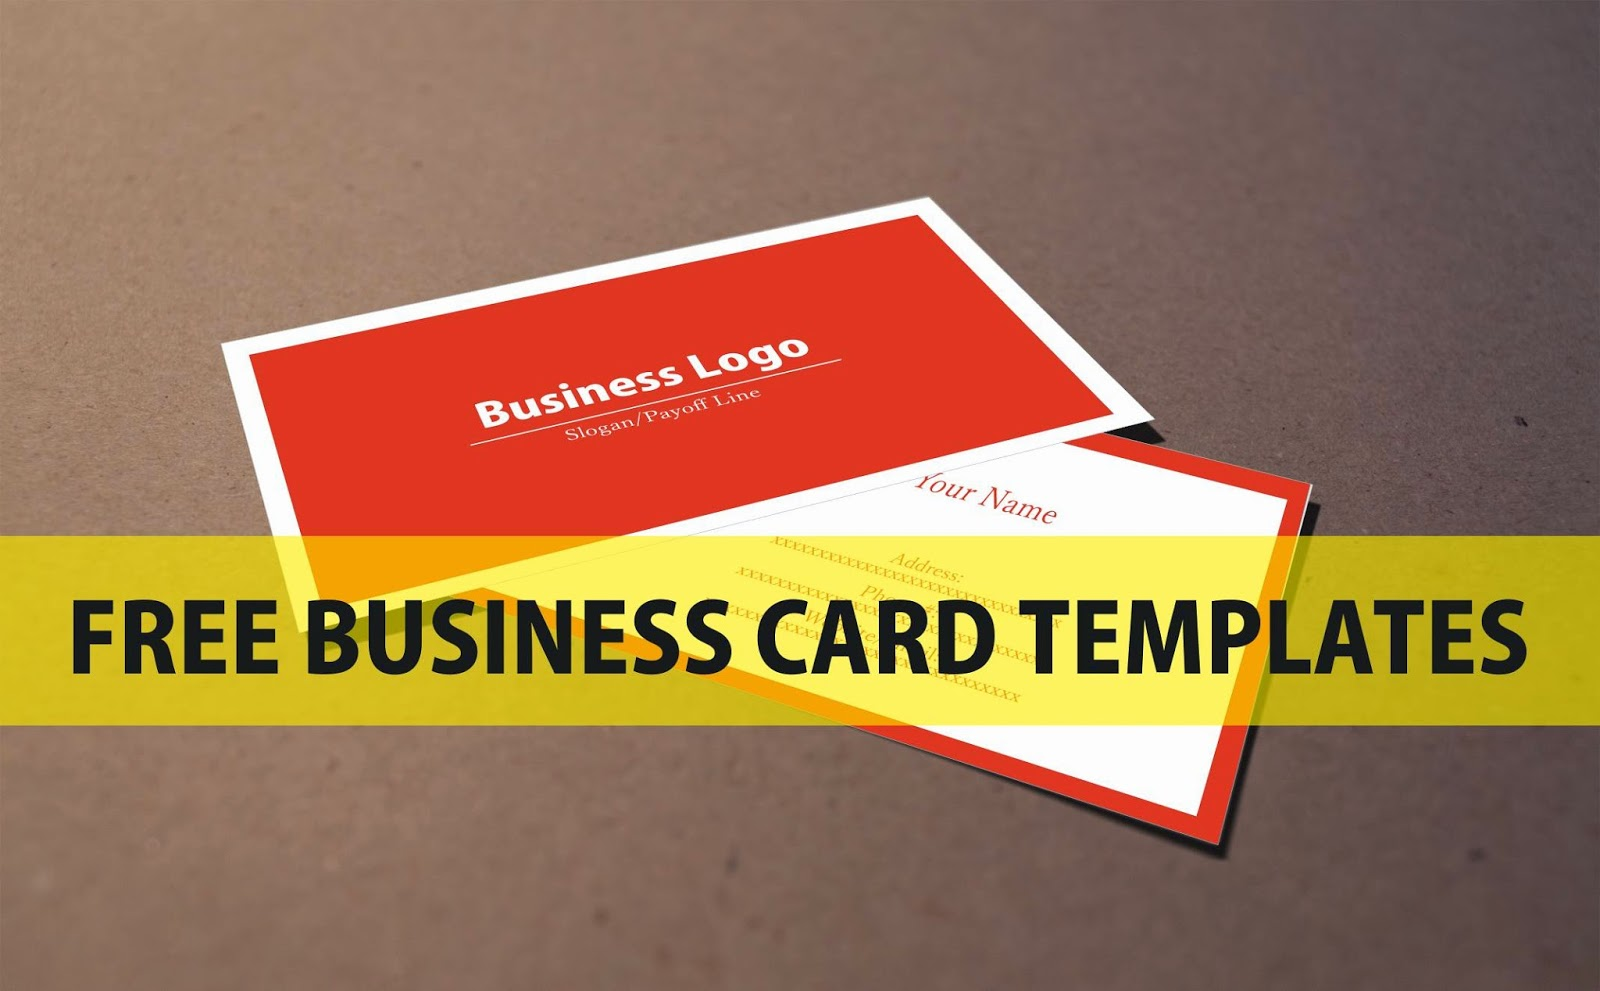 Free business card template download coreldraw file a graphic free business card template download coreldraw file accmission Gallery